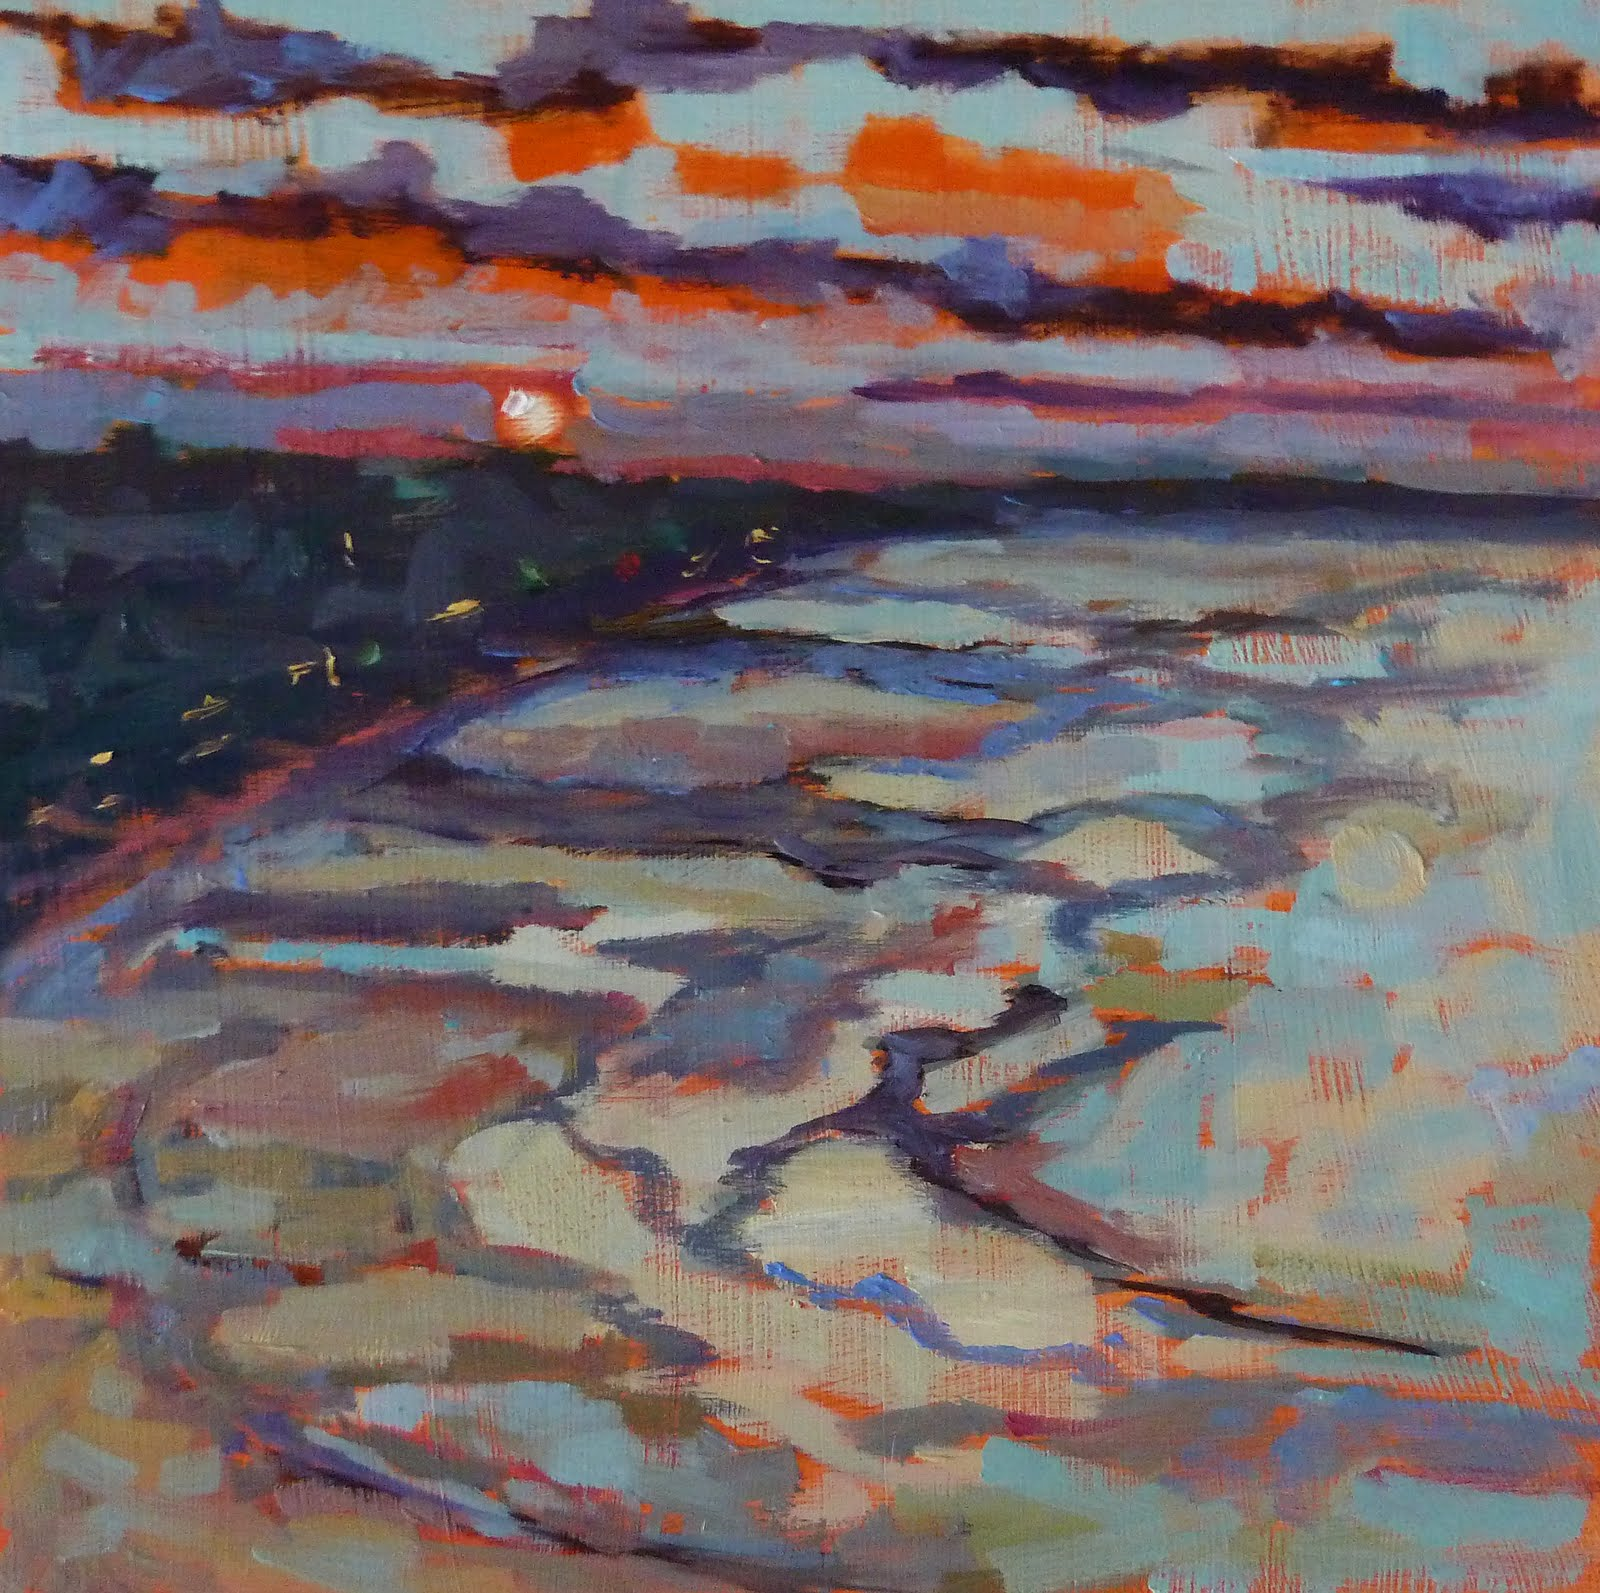 """Nantasket Beach Sunset 8x8 oil on gatorboard Framed, black satin wood Unframed Price is $175"" original fine art by Mary Sheehan Winn"